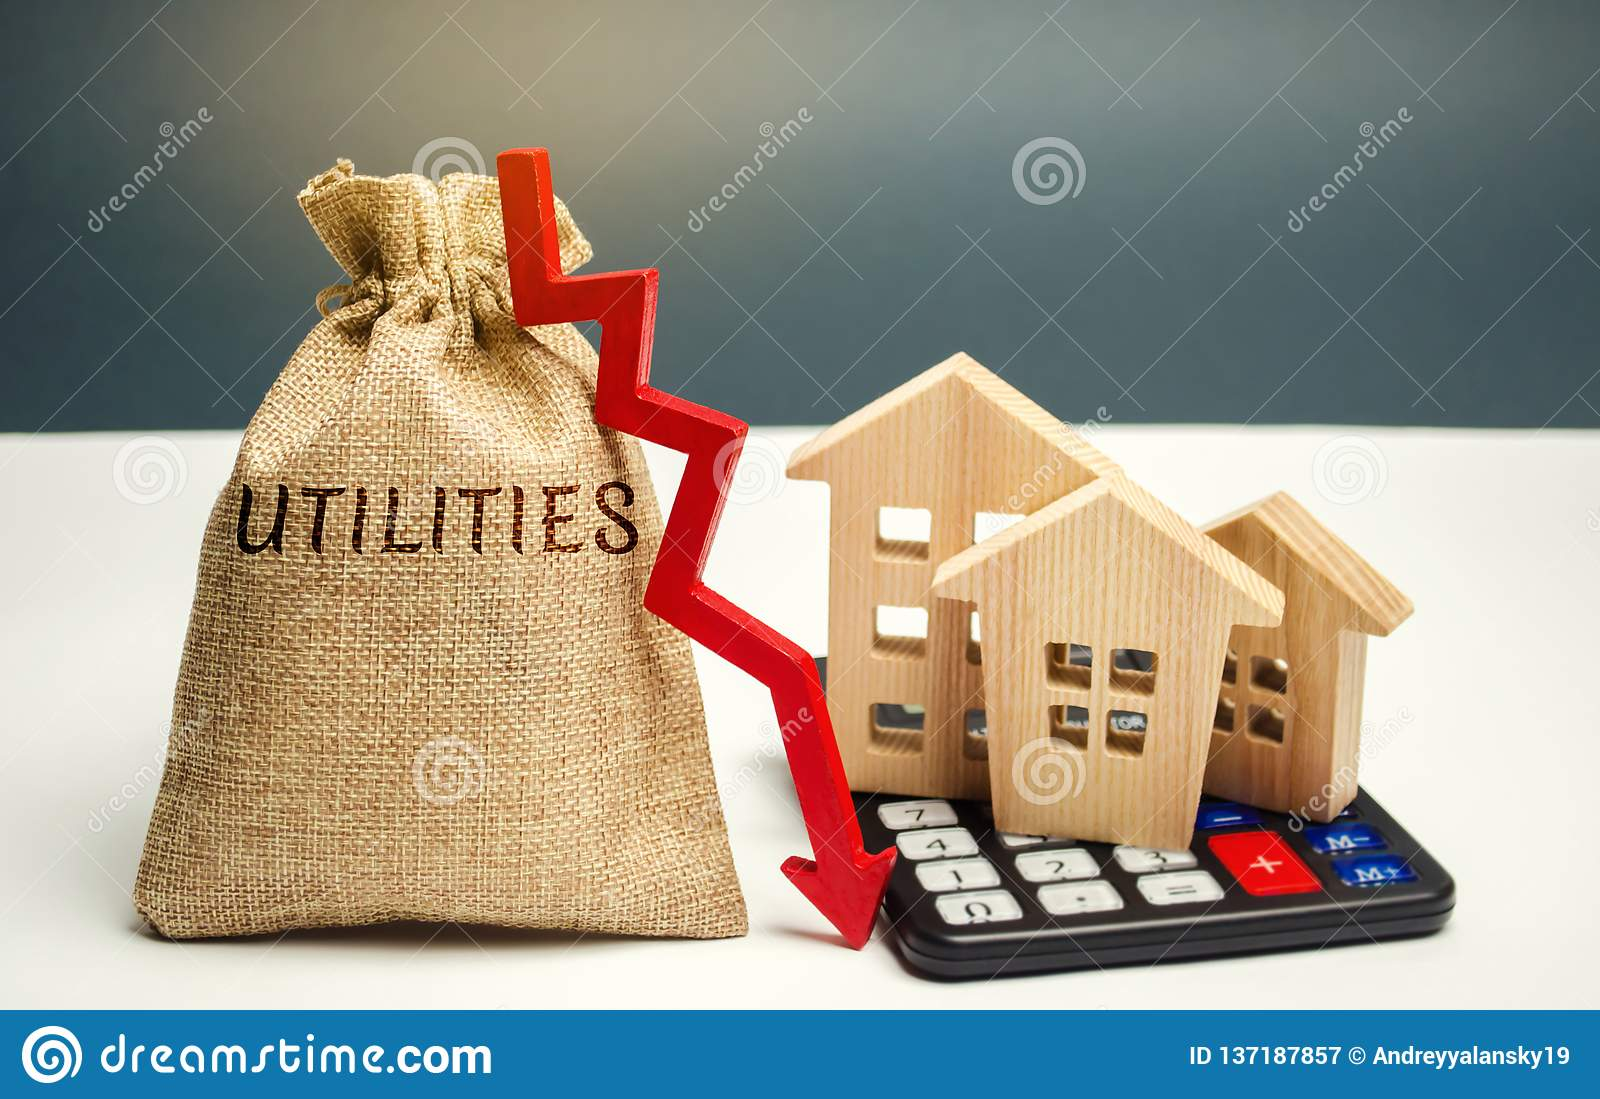 Money bag with the word Utilities and an arrow down and wooden houses on the calculator. Reduced prices for utilities. Low prices